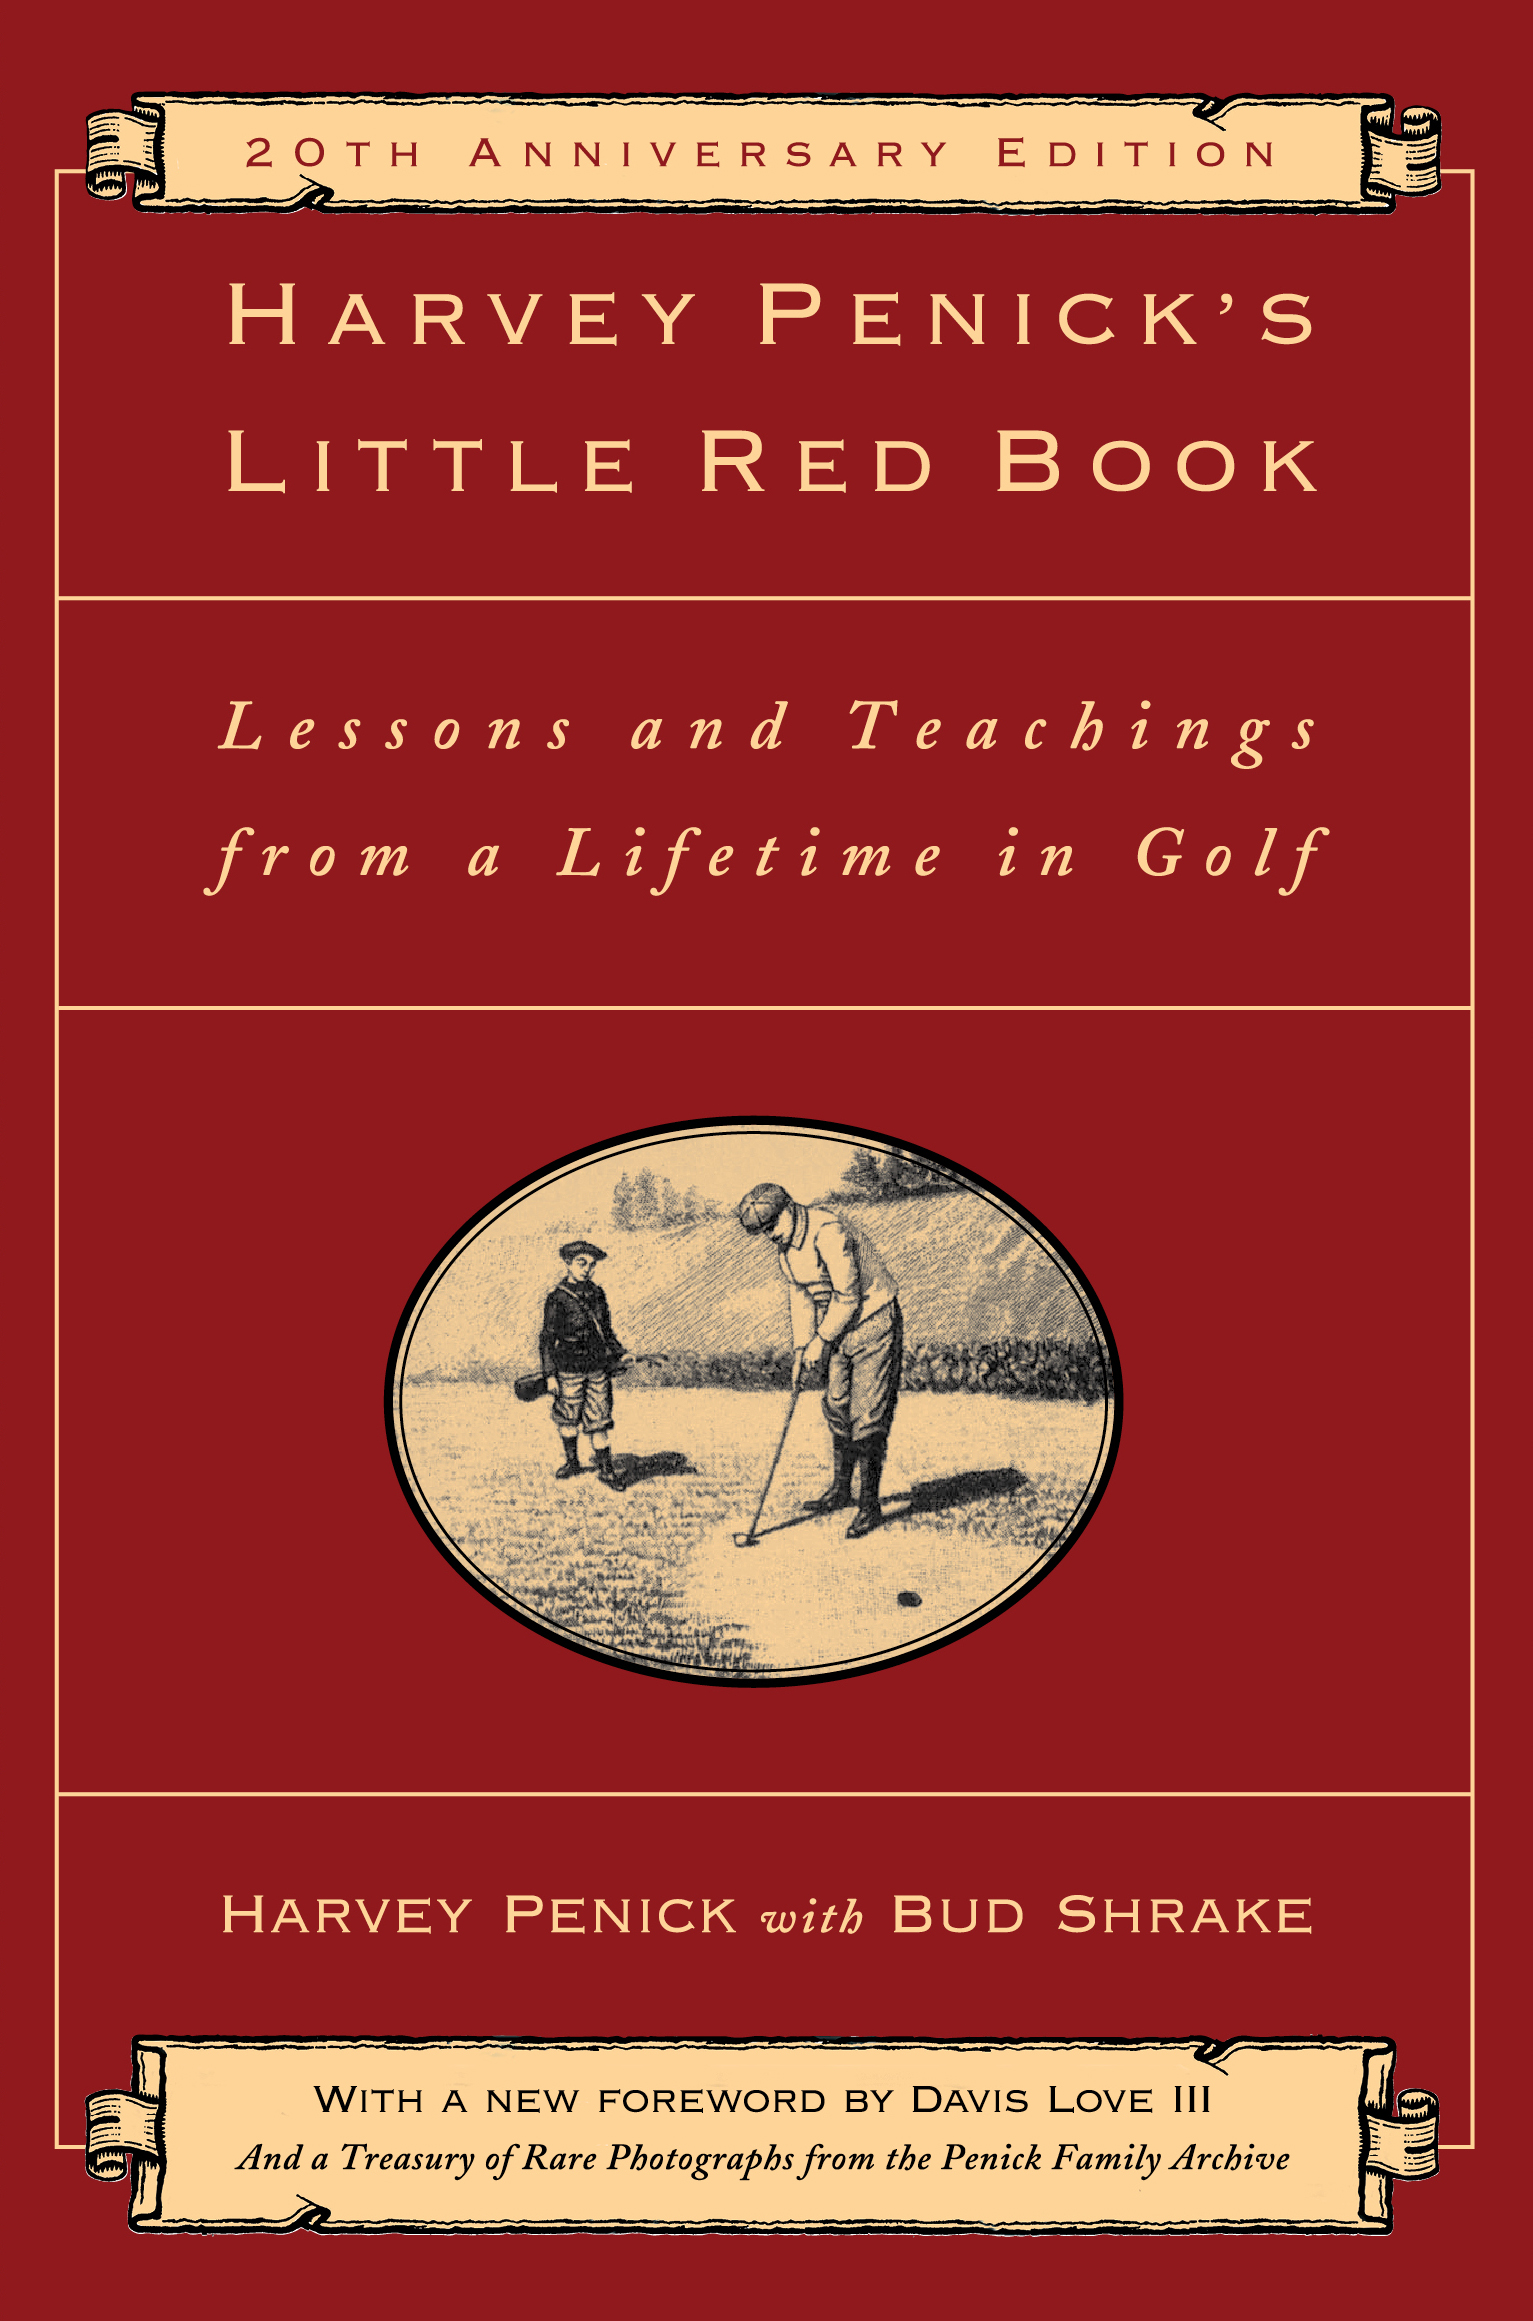 Book Cover Image (jpg): Harvey Penick's Little Red Book